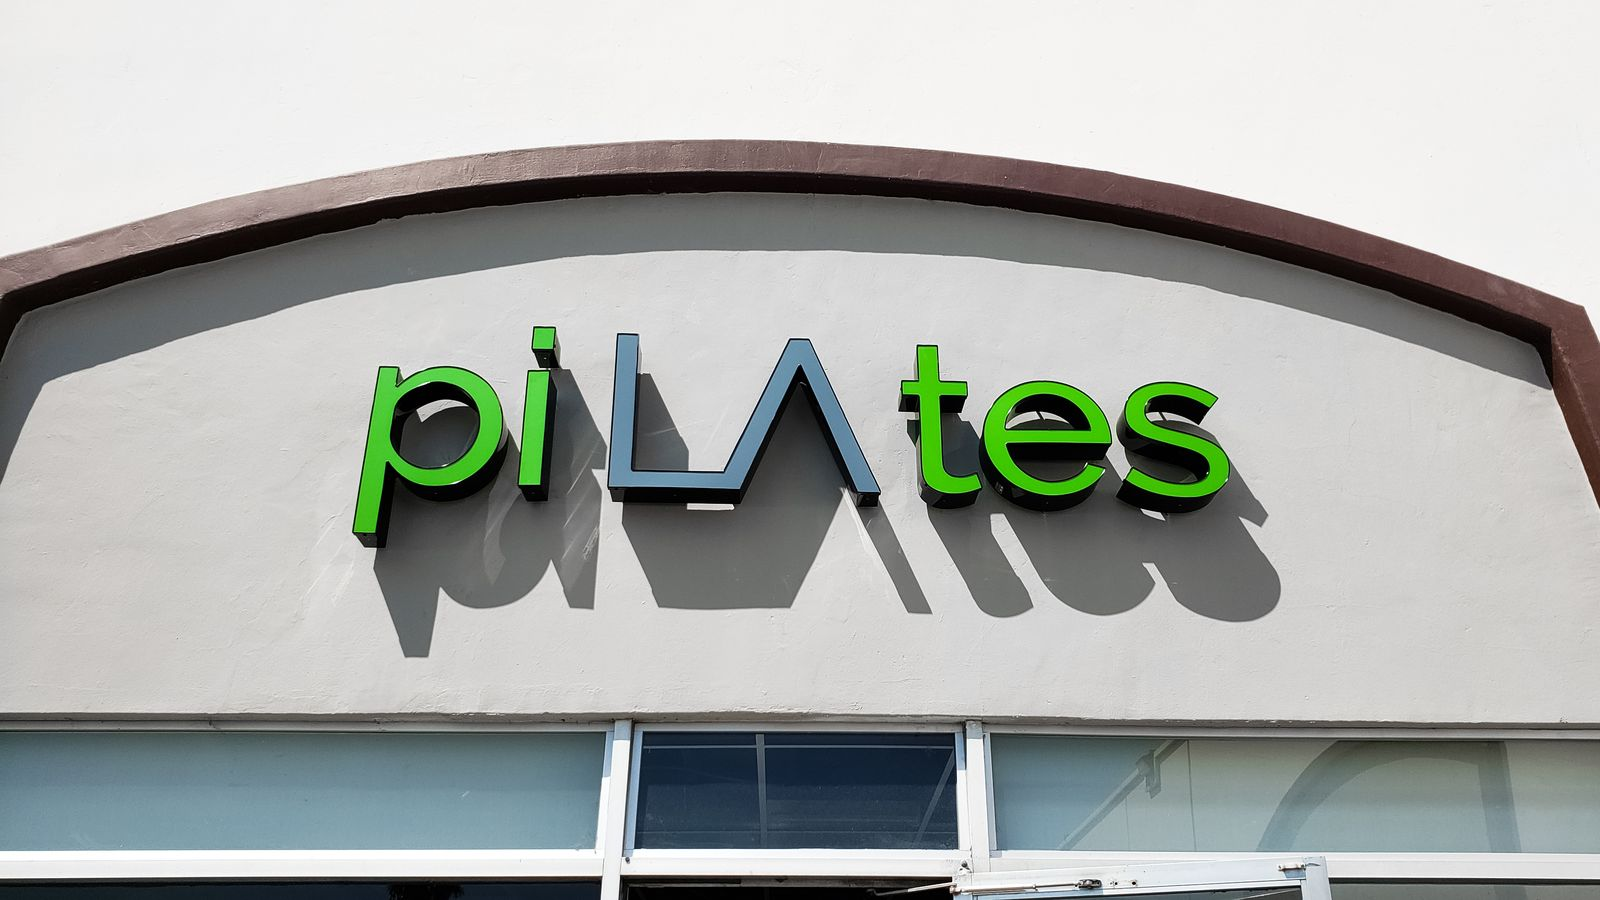 pilates channel letters